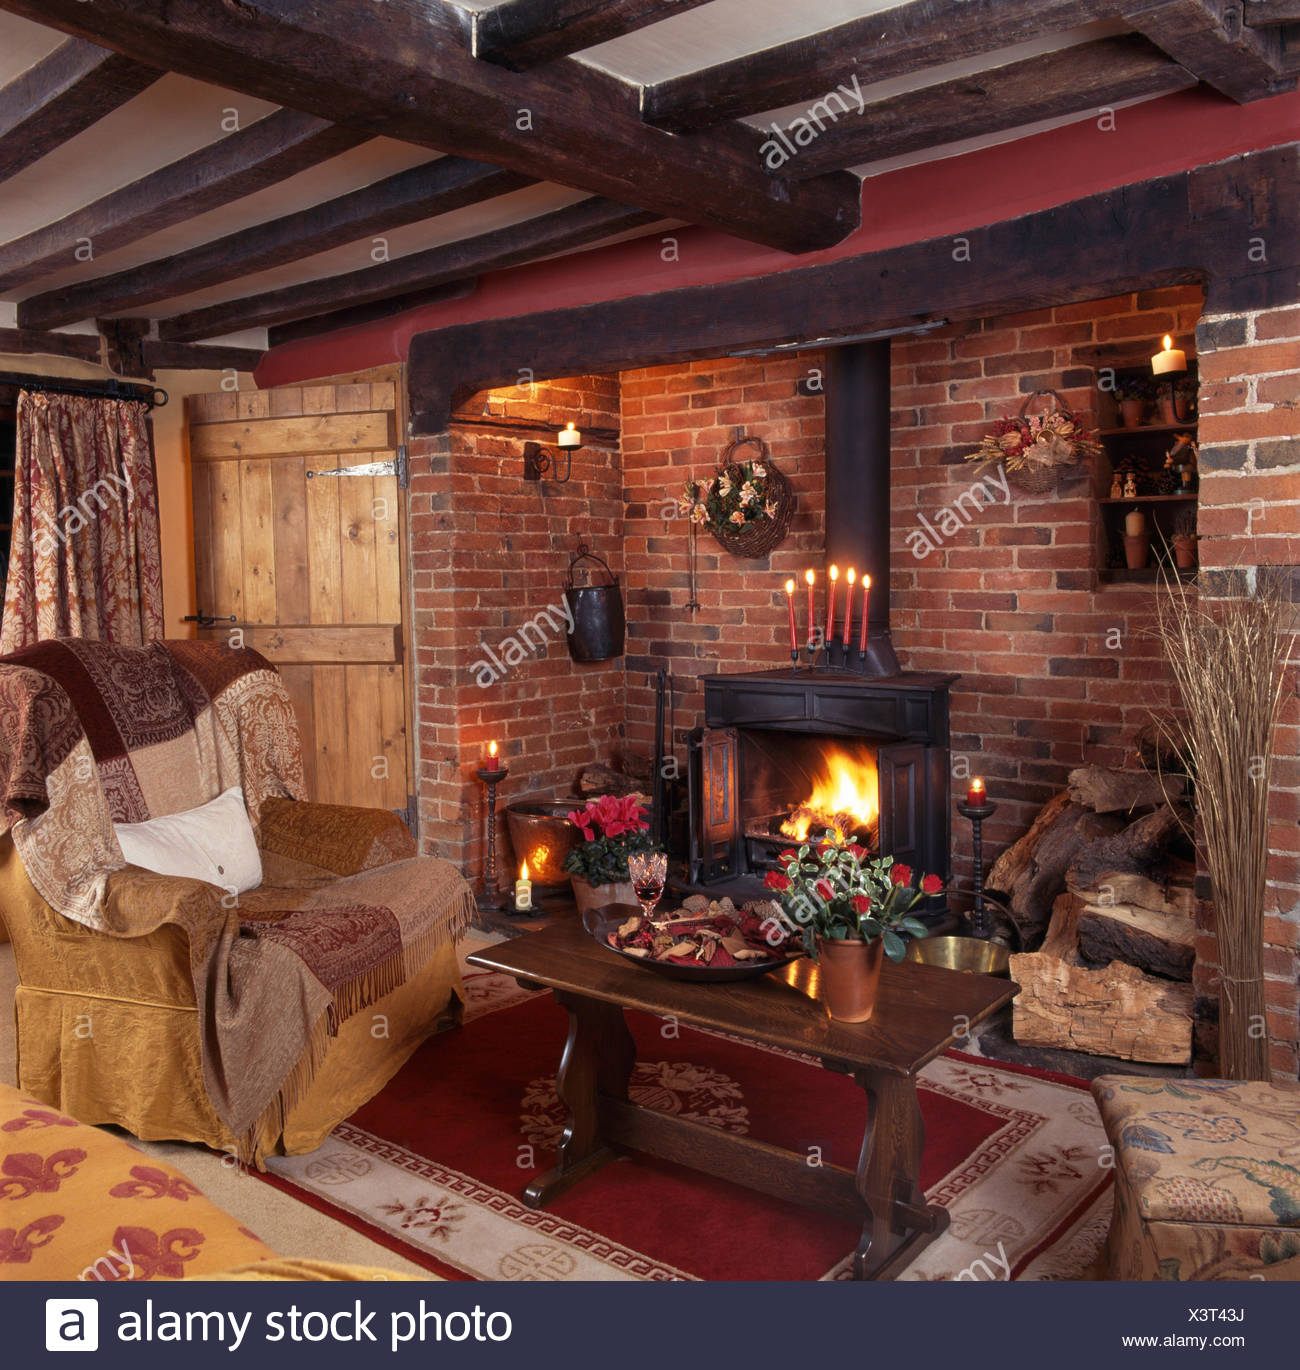 Wood burning stove in inglenook fireplace in  a beamed nineties country living room with an oak coffee table beside an armchair - Stock Image